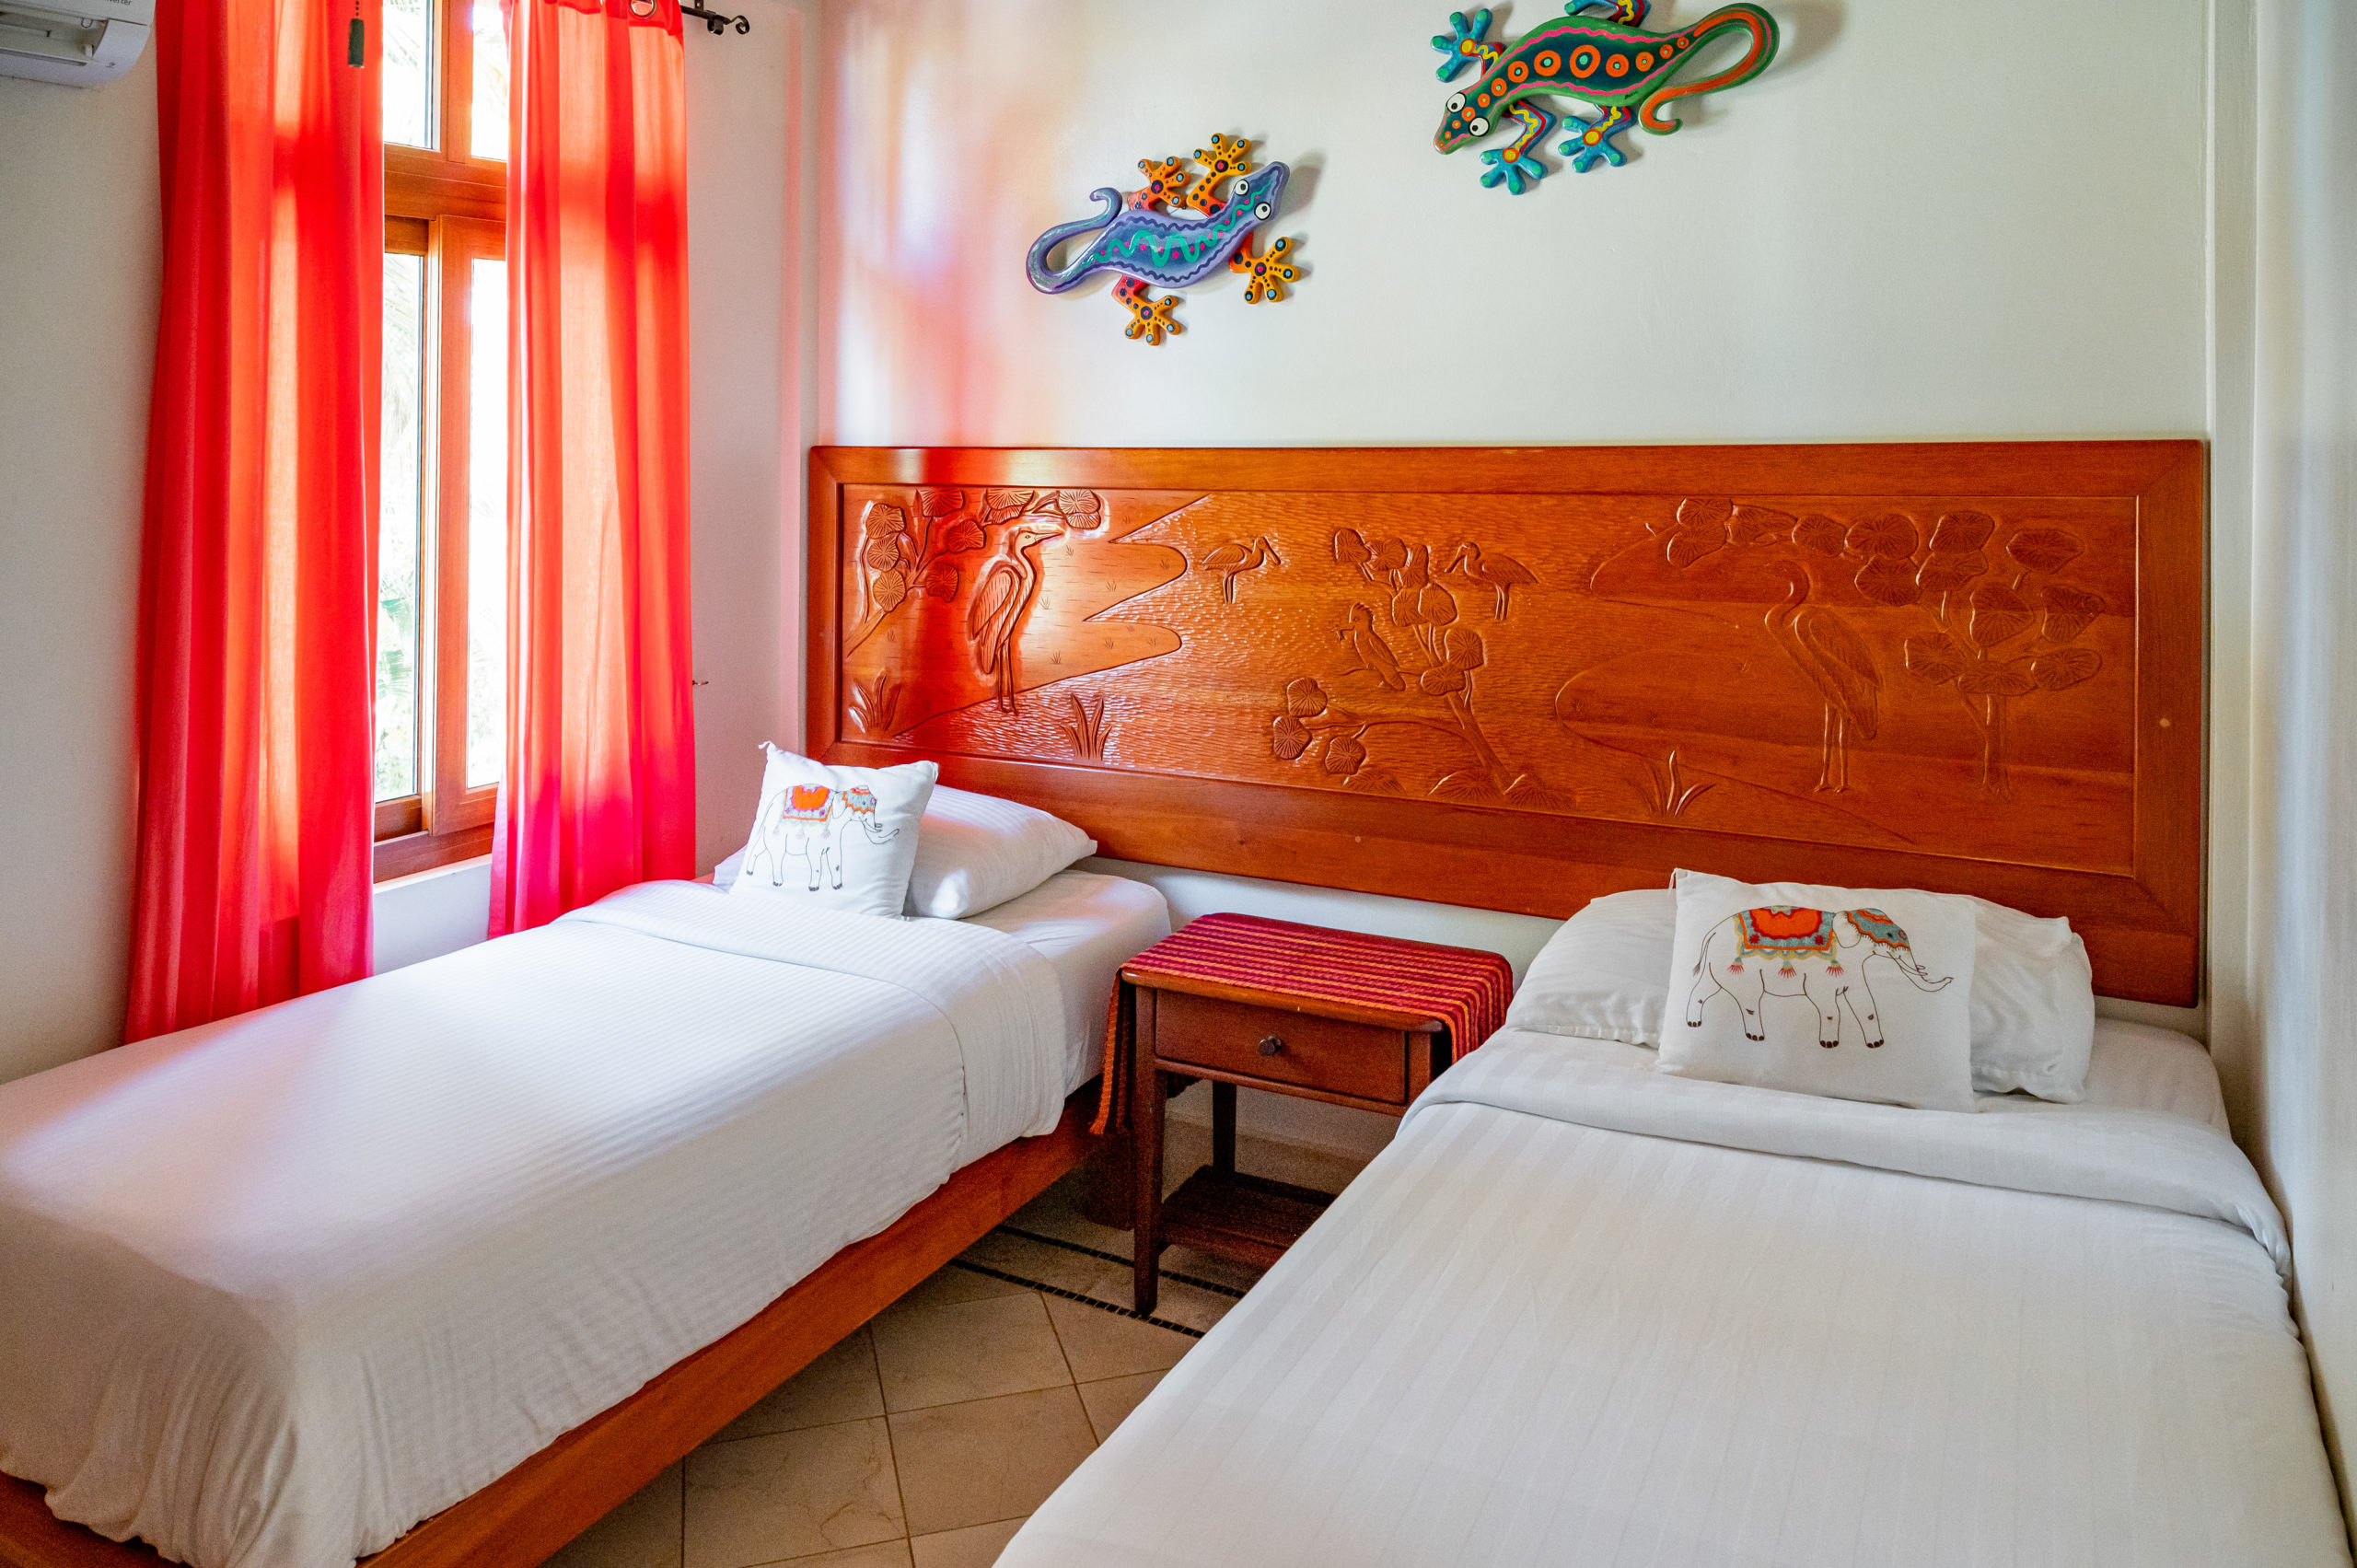 Bringing the kids along? Themed rooms keep Belizean delights dancing in through their dreams all night.